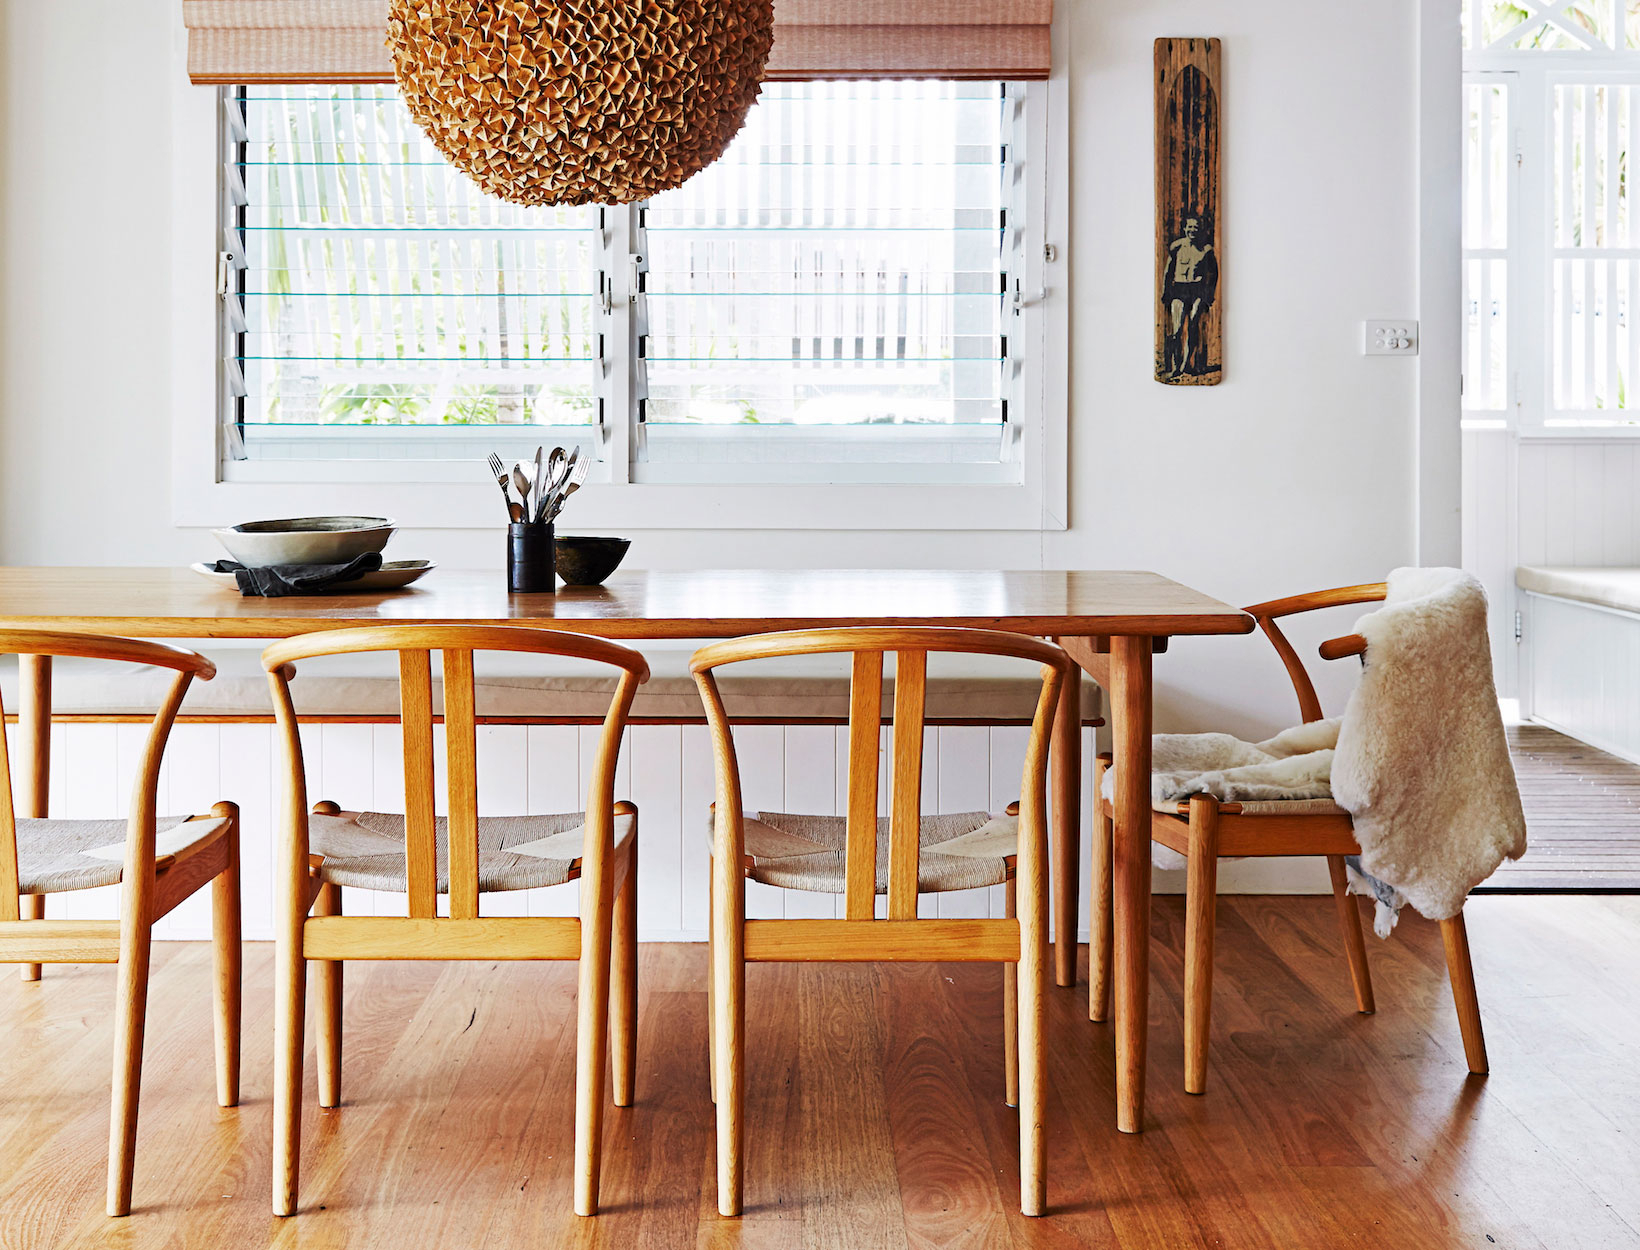 Artefac Contemporary Casual Dining Tables Intended For Well Known 8 Design Professionals On Their Favorite Dining Tables (View 6 of 25)